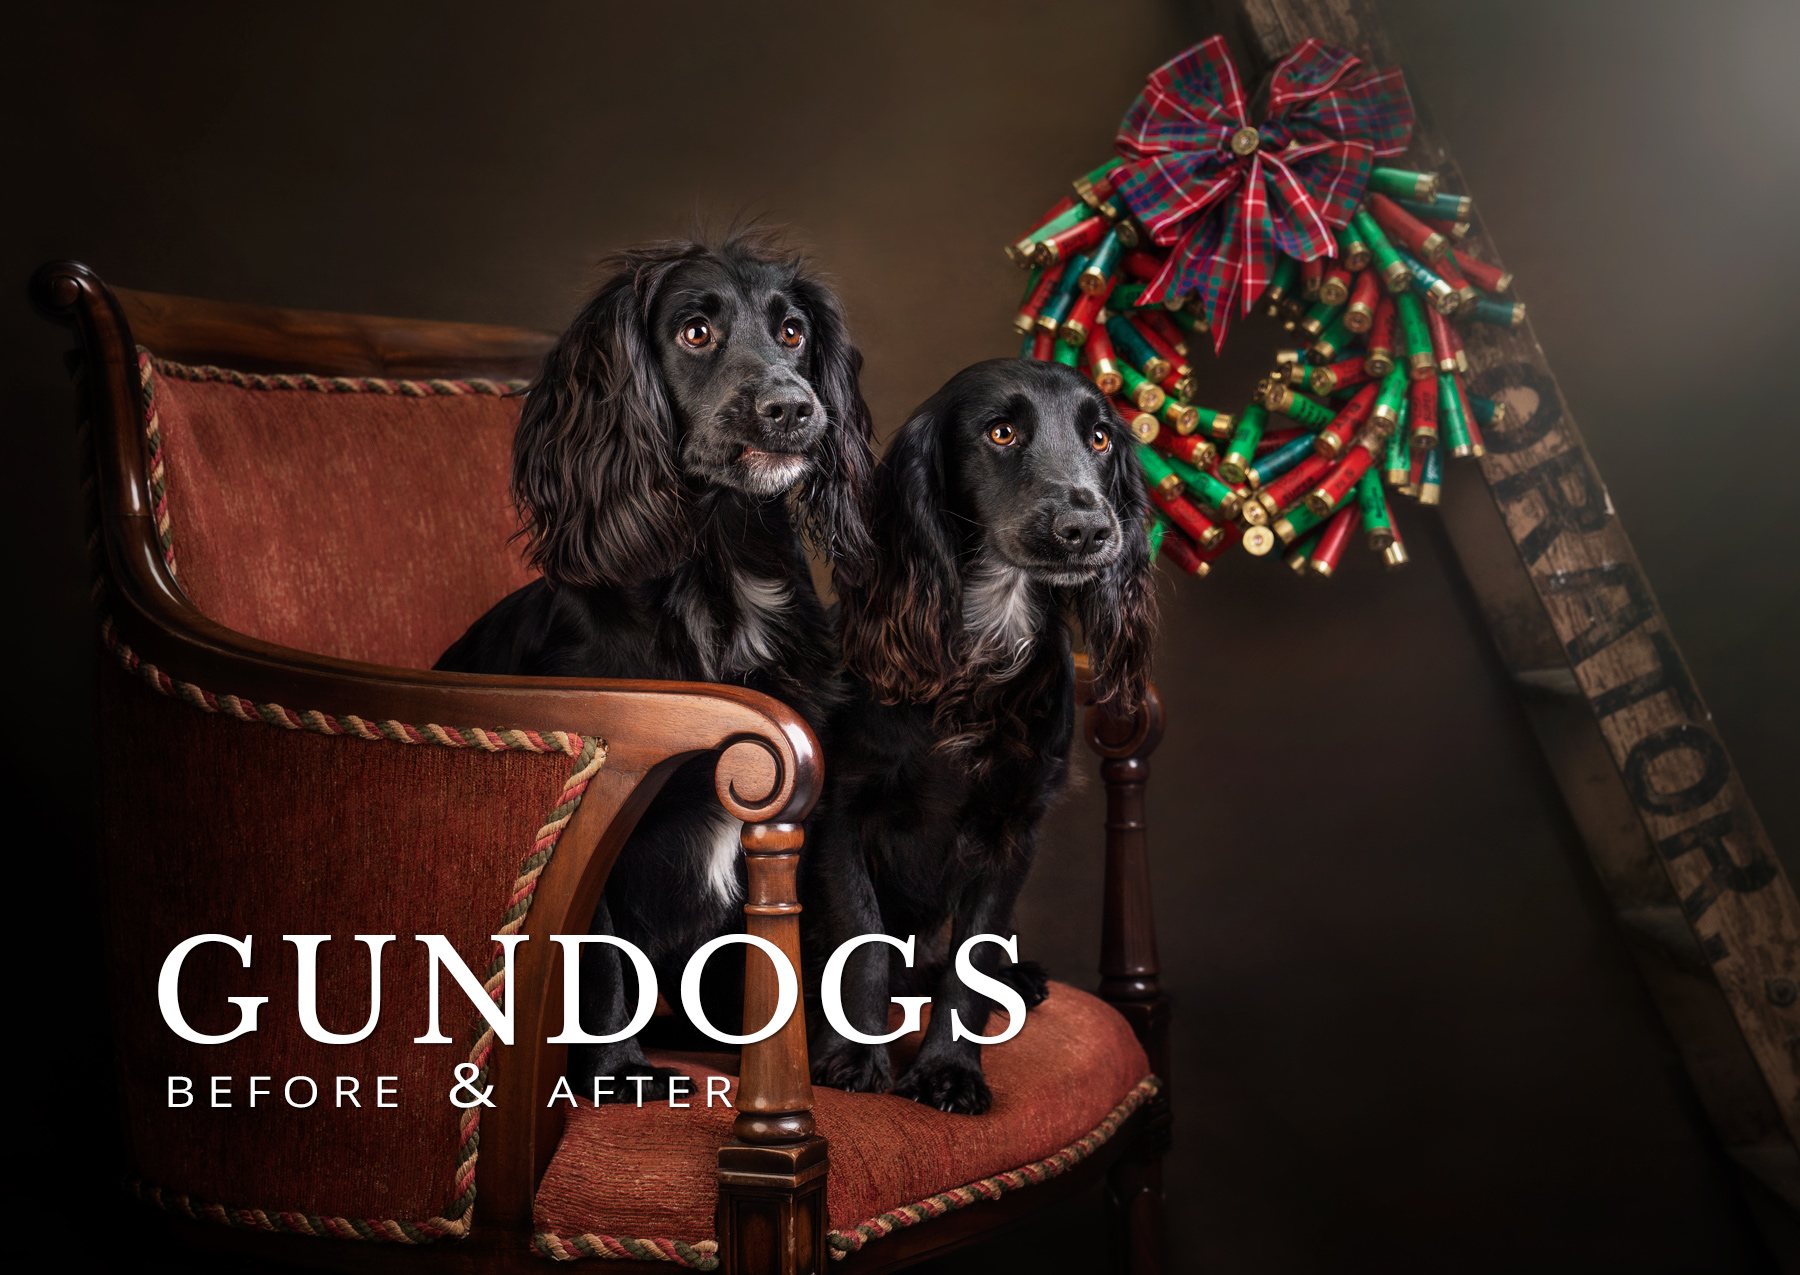 Gundogs before and after